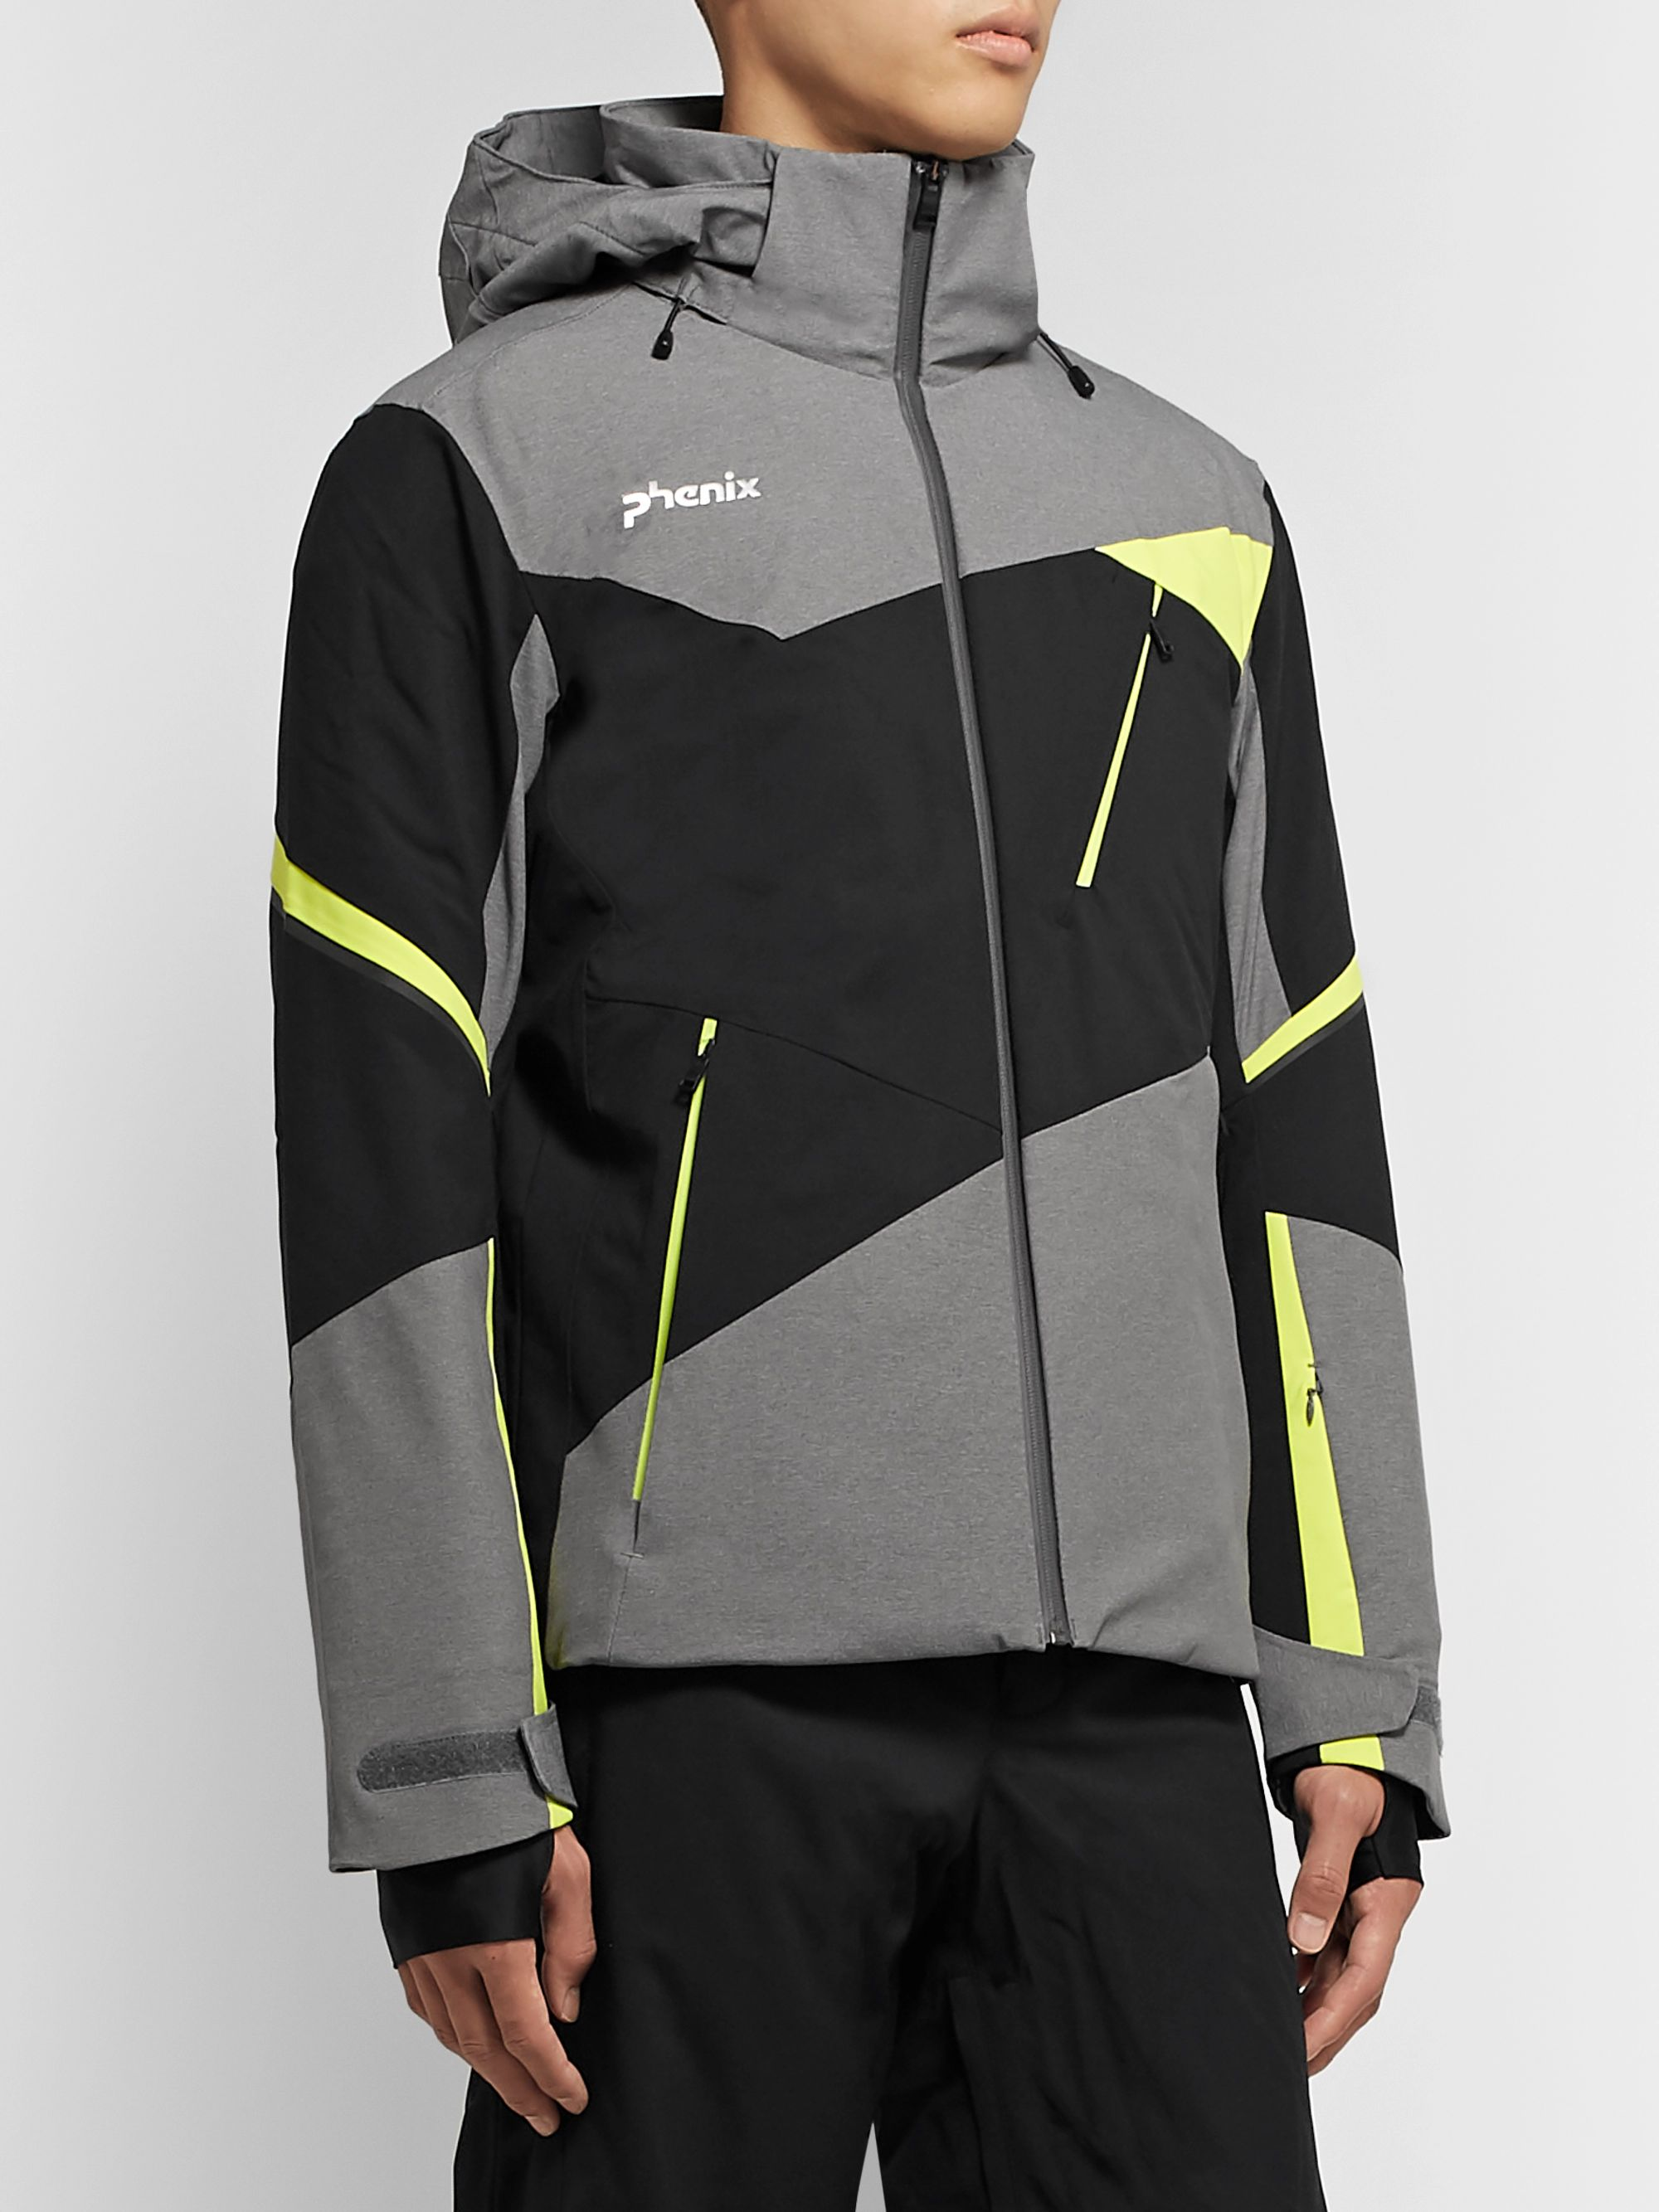 Phenix Prism Phenix 20,000mmH2O Hooded Ski Jacket